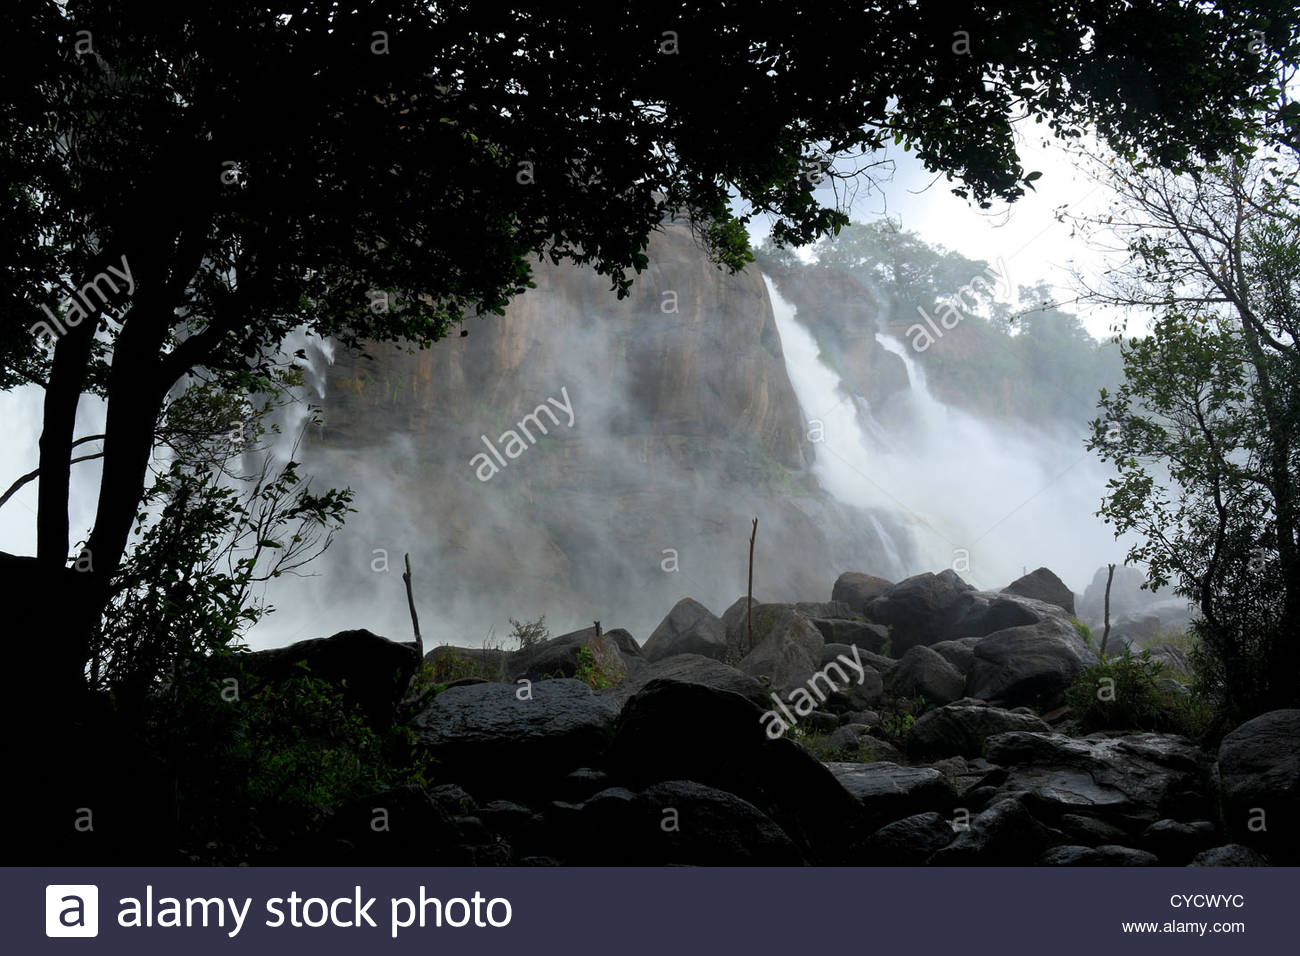 Athirappilly Falls clipart #7, Download drawings